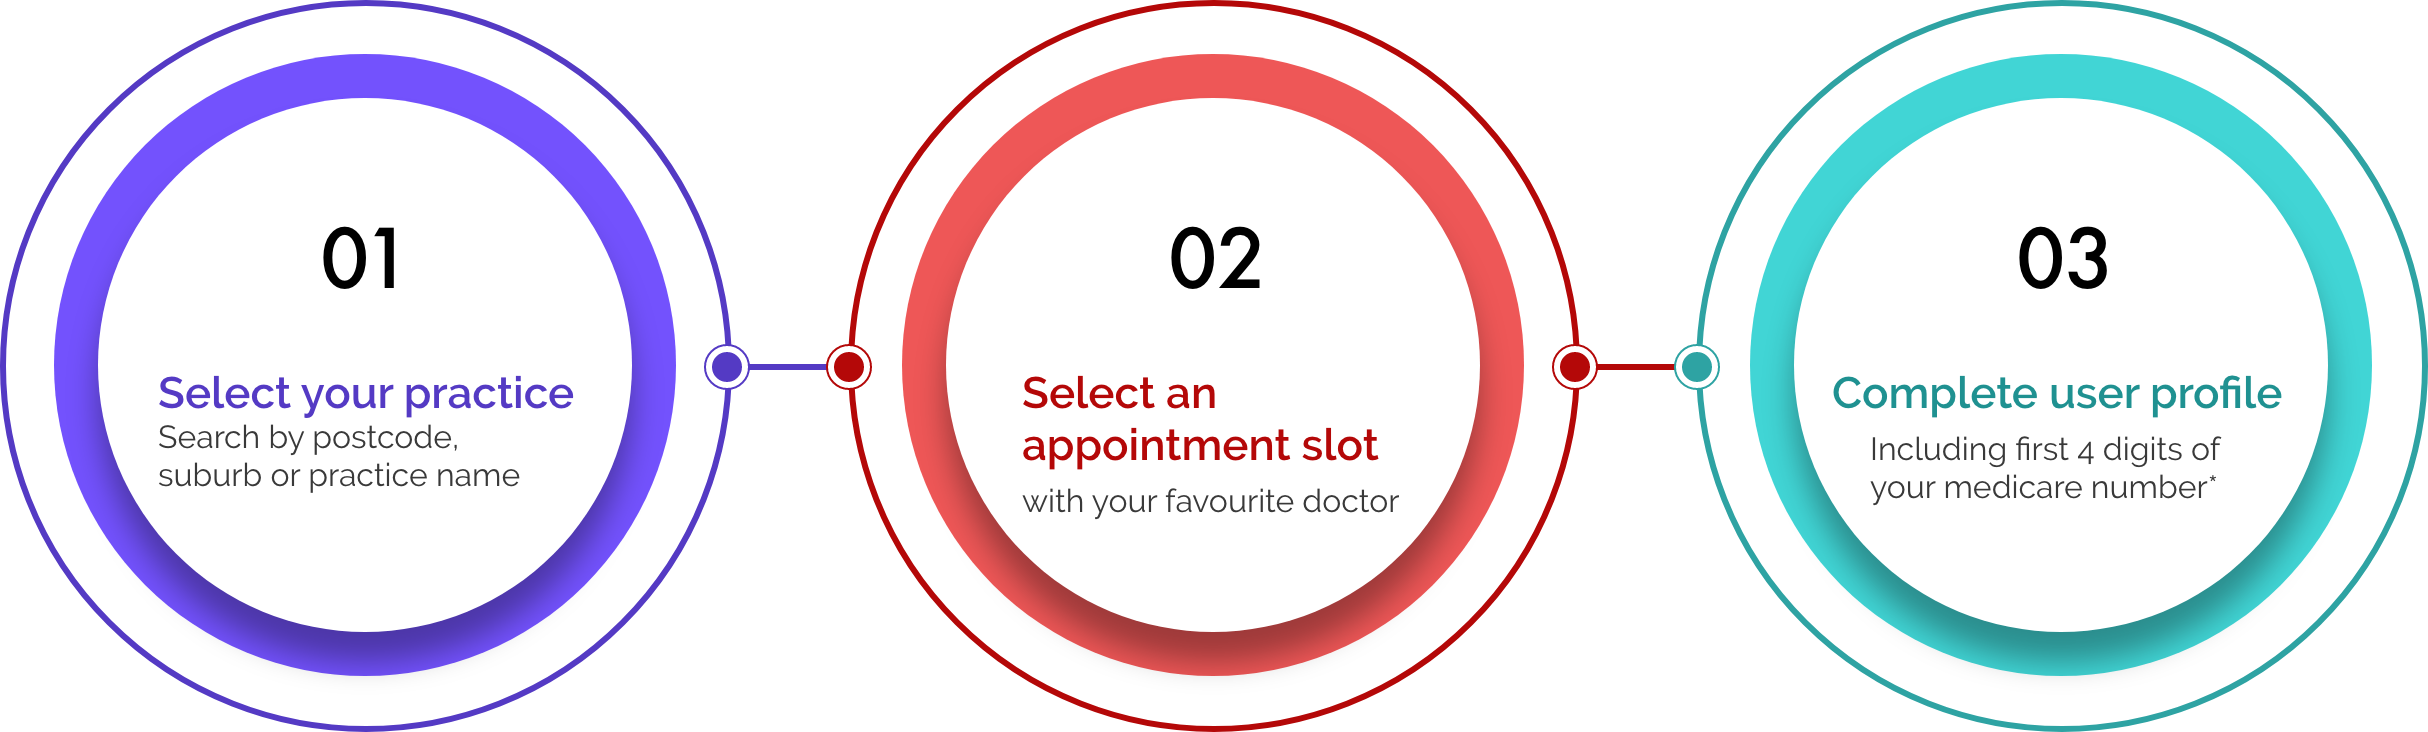 Step One - Select your practice by typing in postcode, suburb or name of practice. Step Two - Select an appointment with your favourite doctor. Step Three - Complete useyr profile including the first 4 digits of your medicare number.